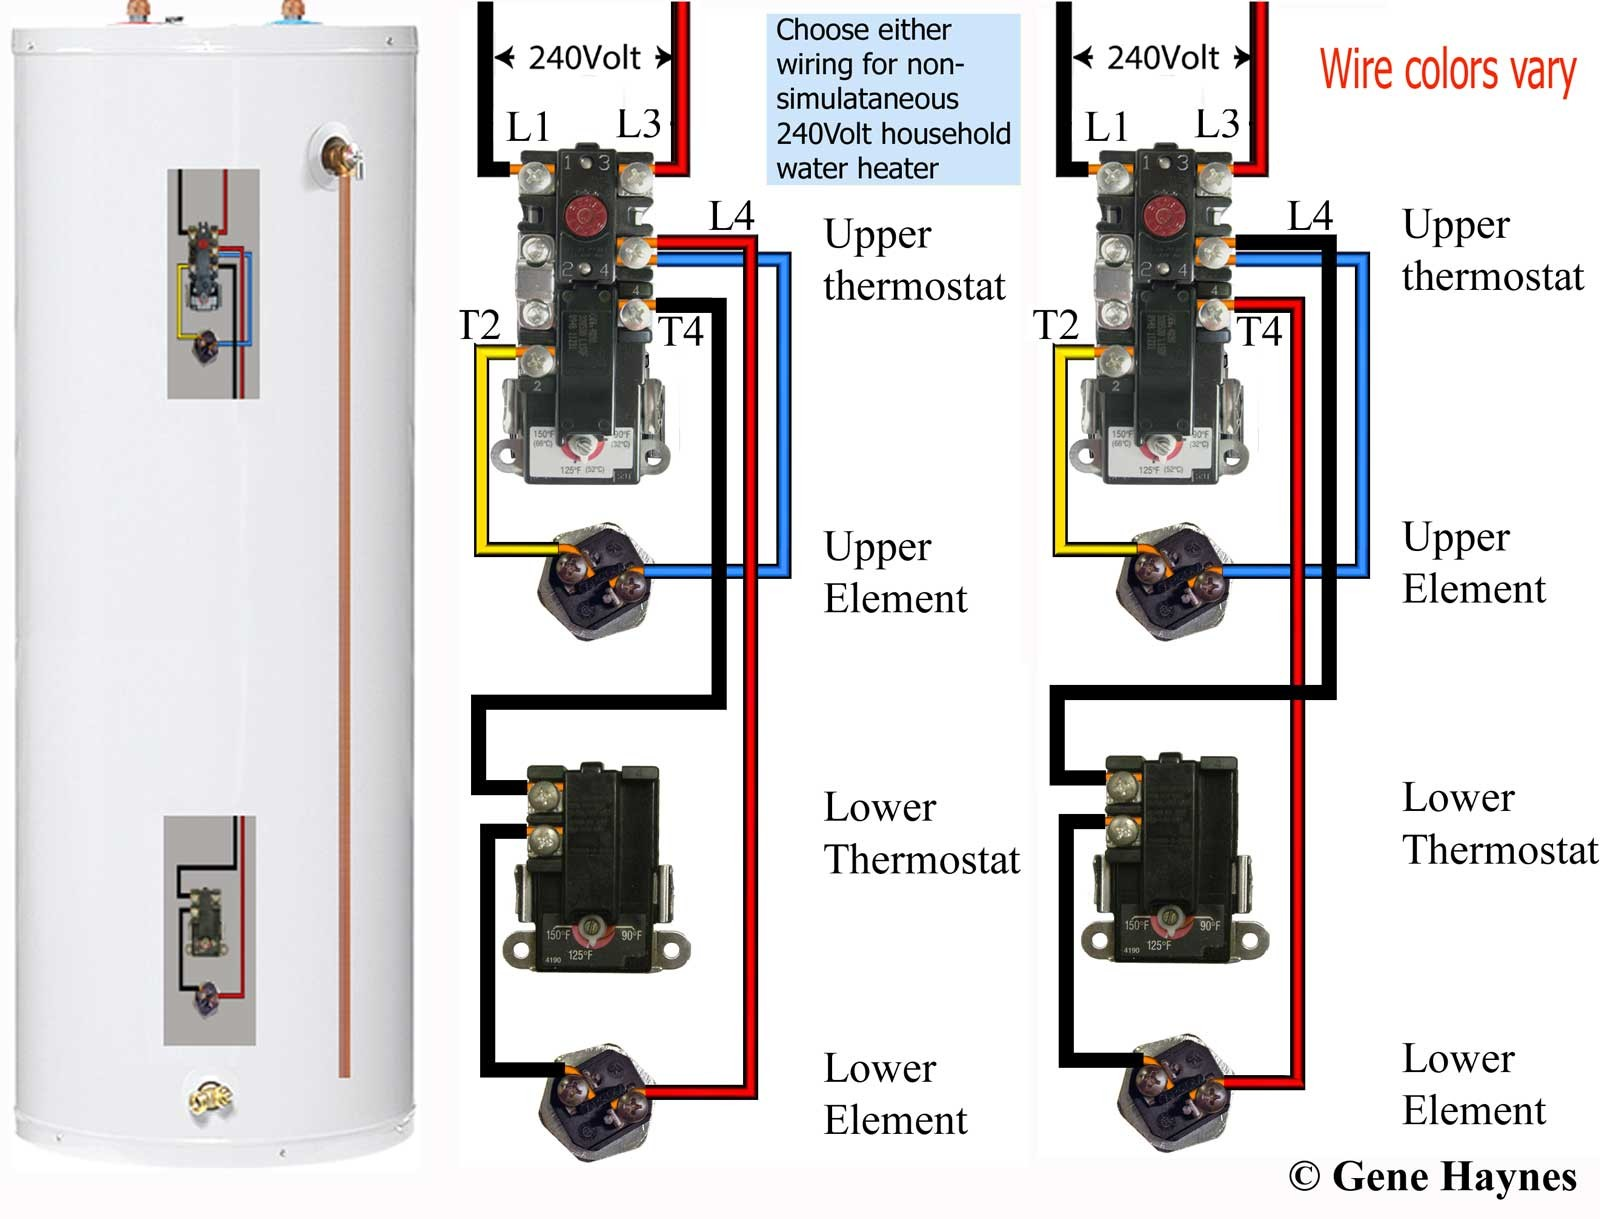 Ge water heater wiring diagram wiring diagram image see larger residential dual element water heater both elements are never on at same time unless ccuart Images